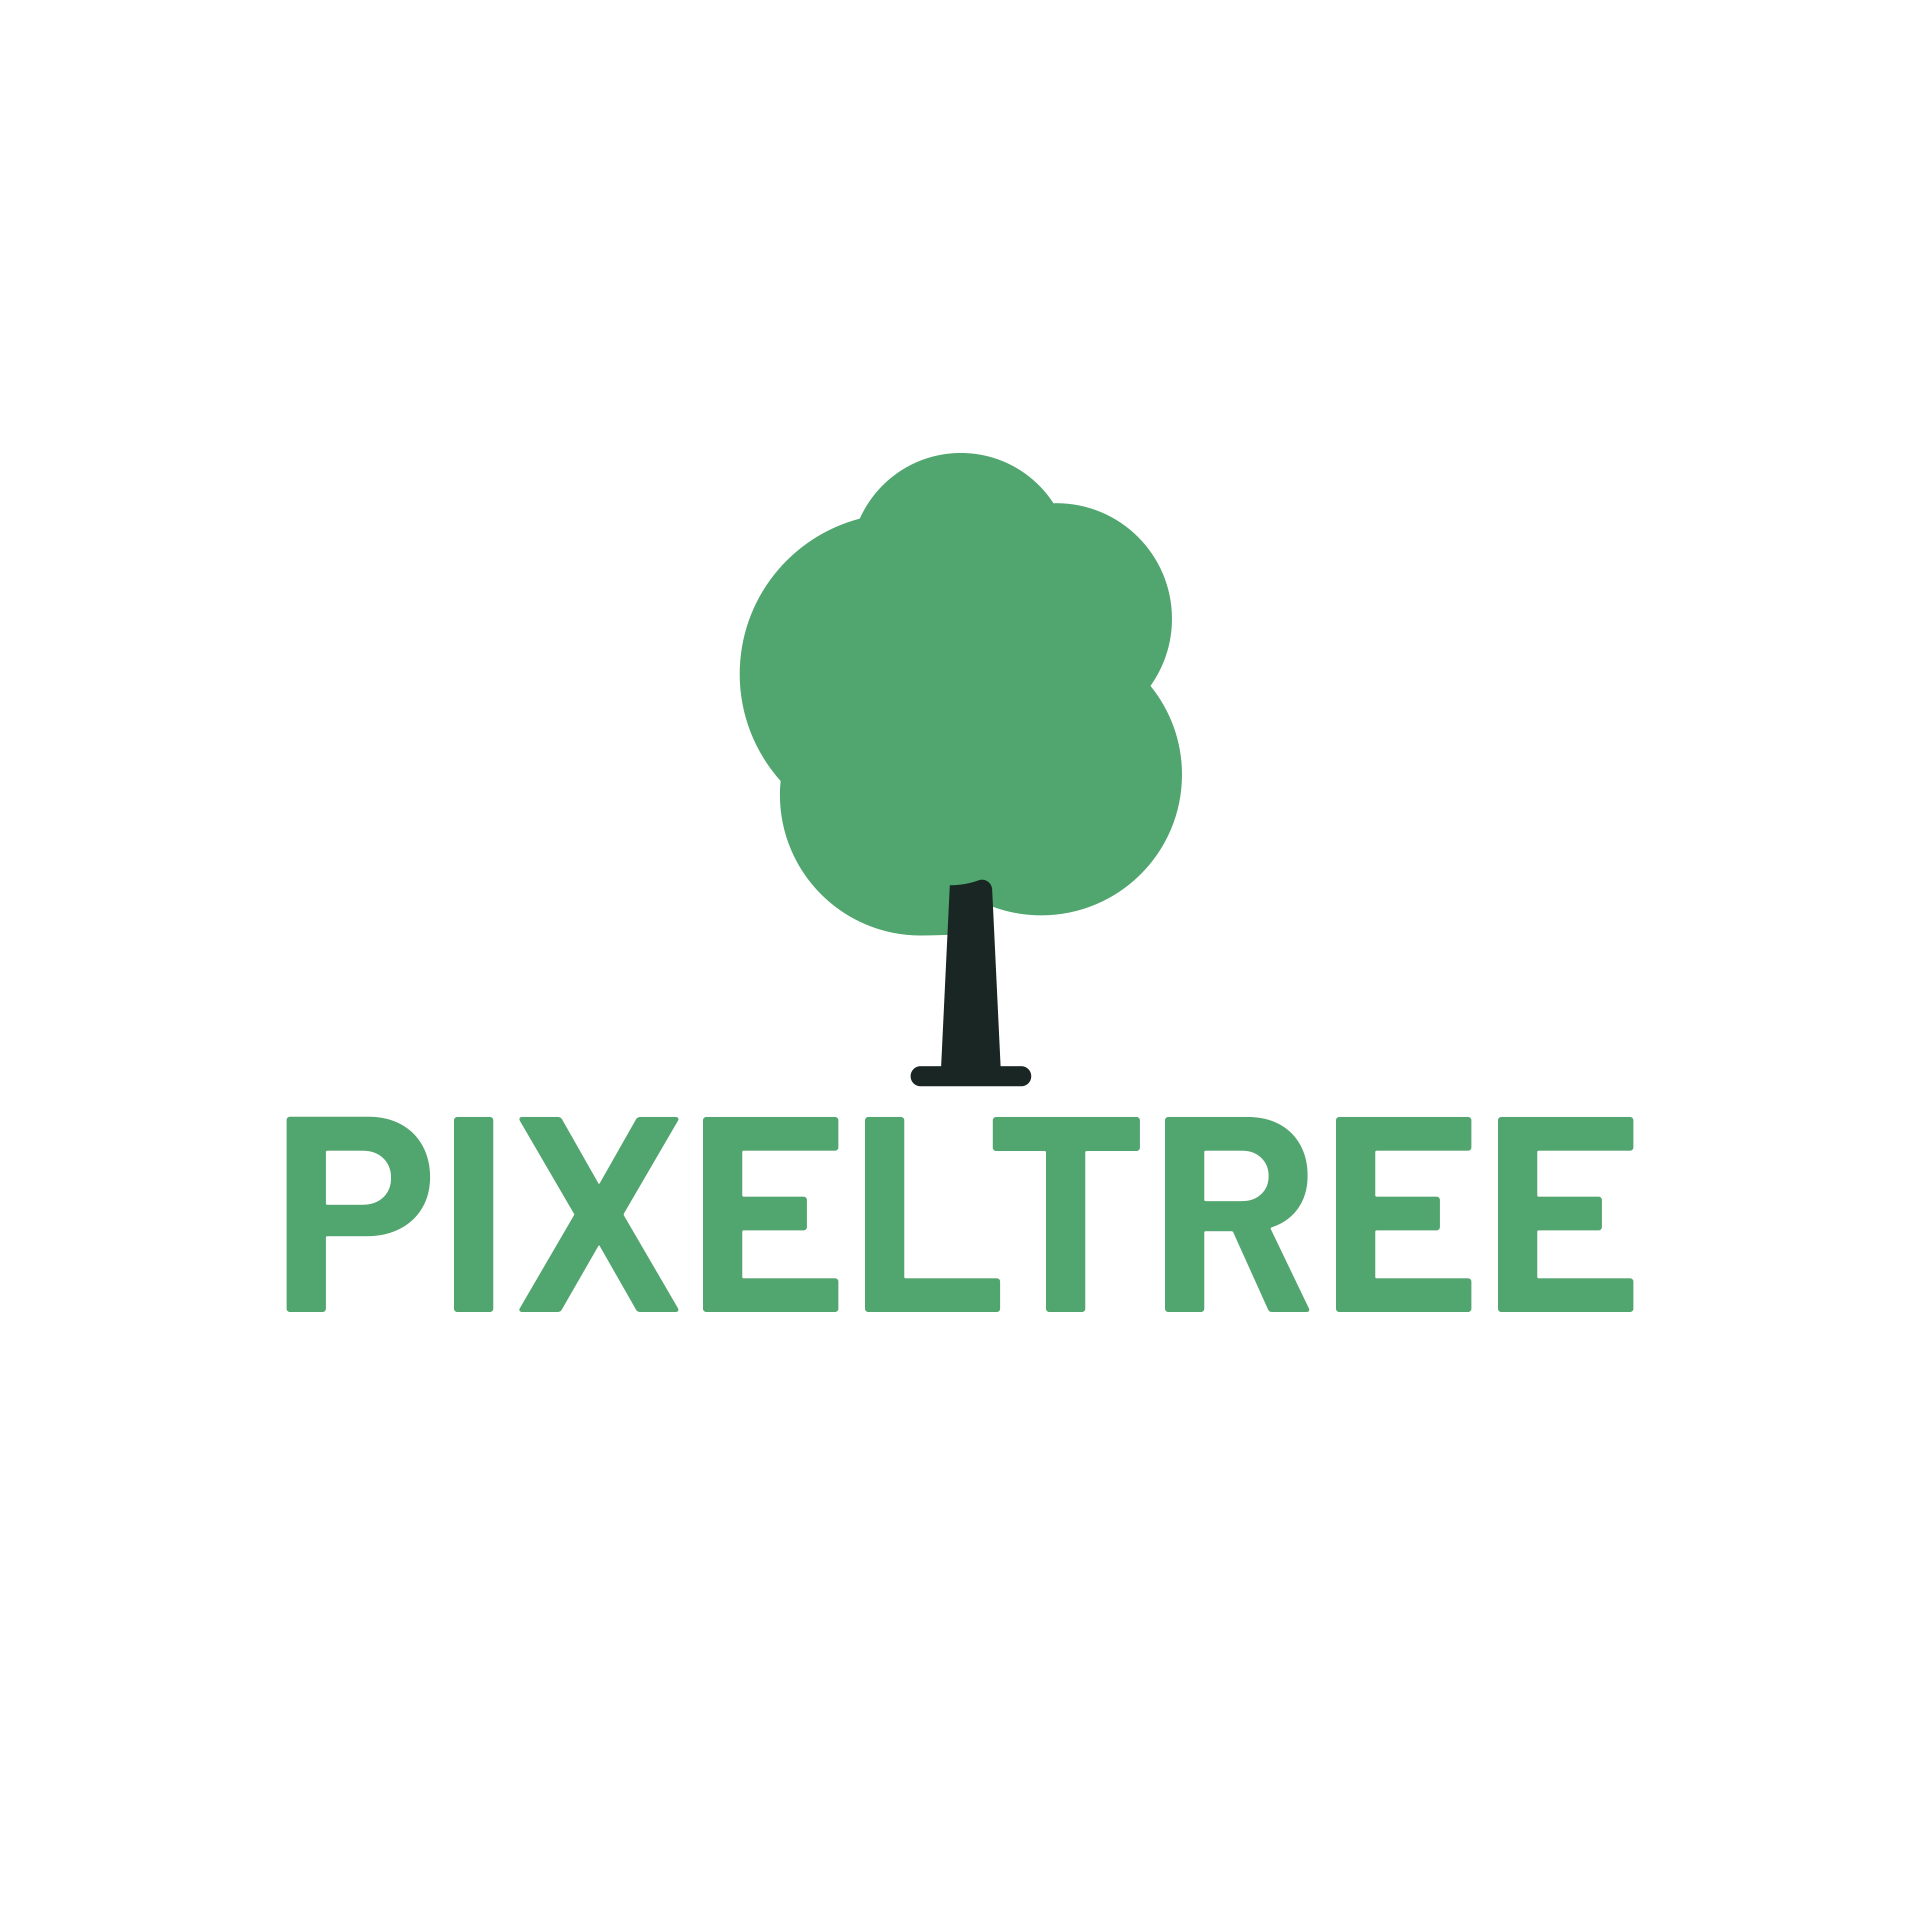 computerherstellers Antwerpen Pixeltree - digital solutions